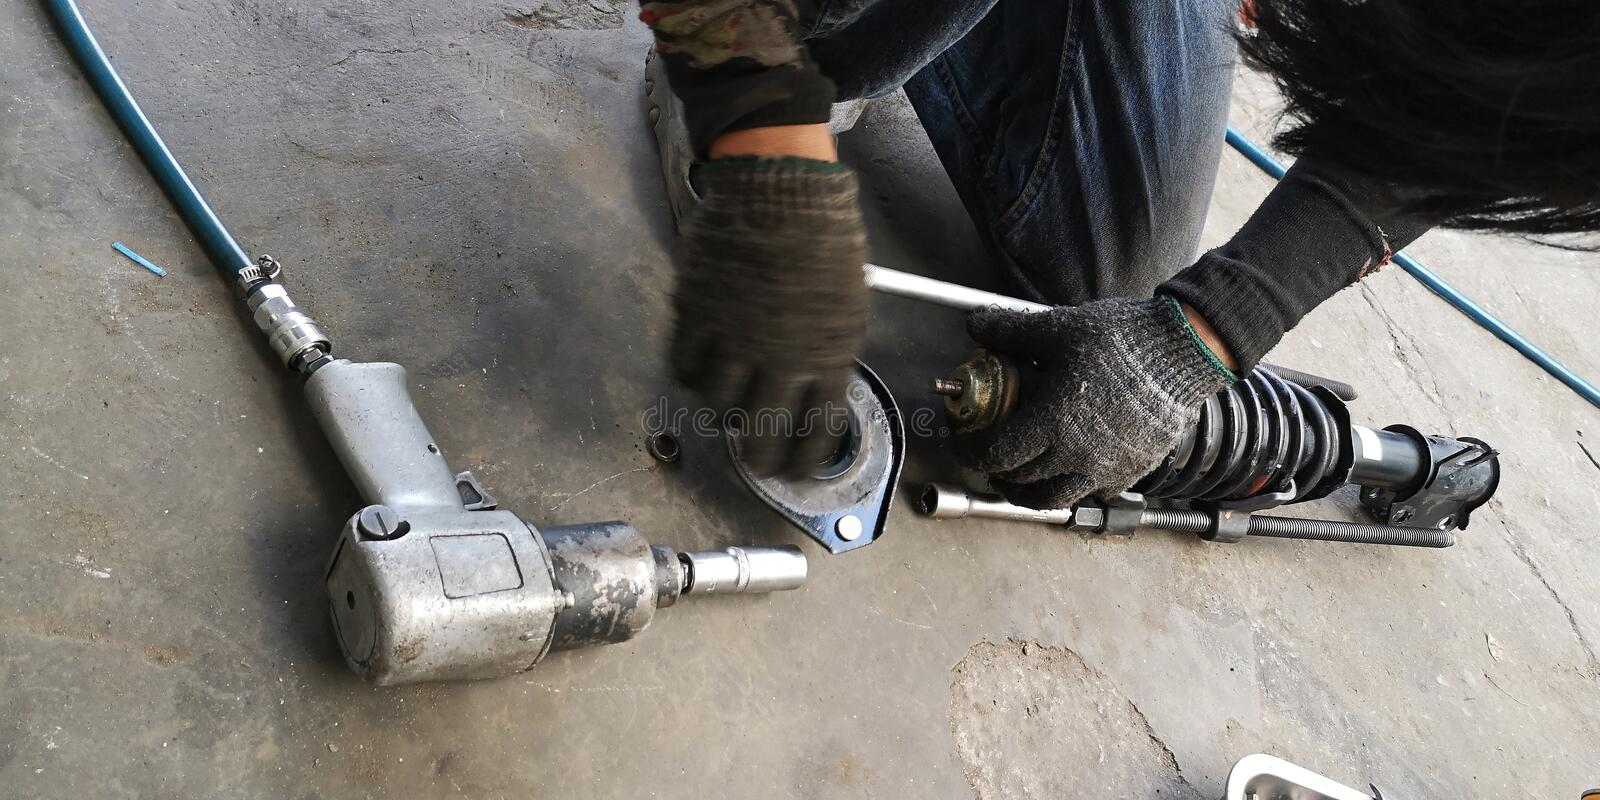 Shock absorber replacement is near has air gun tool by Asian mechanic royalty free stock photo